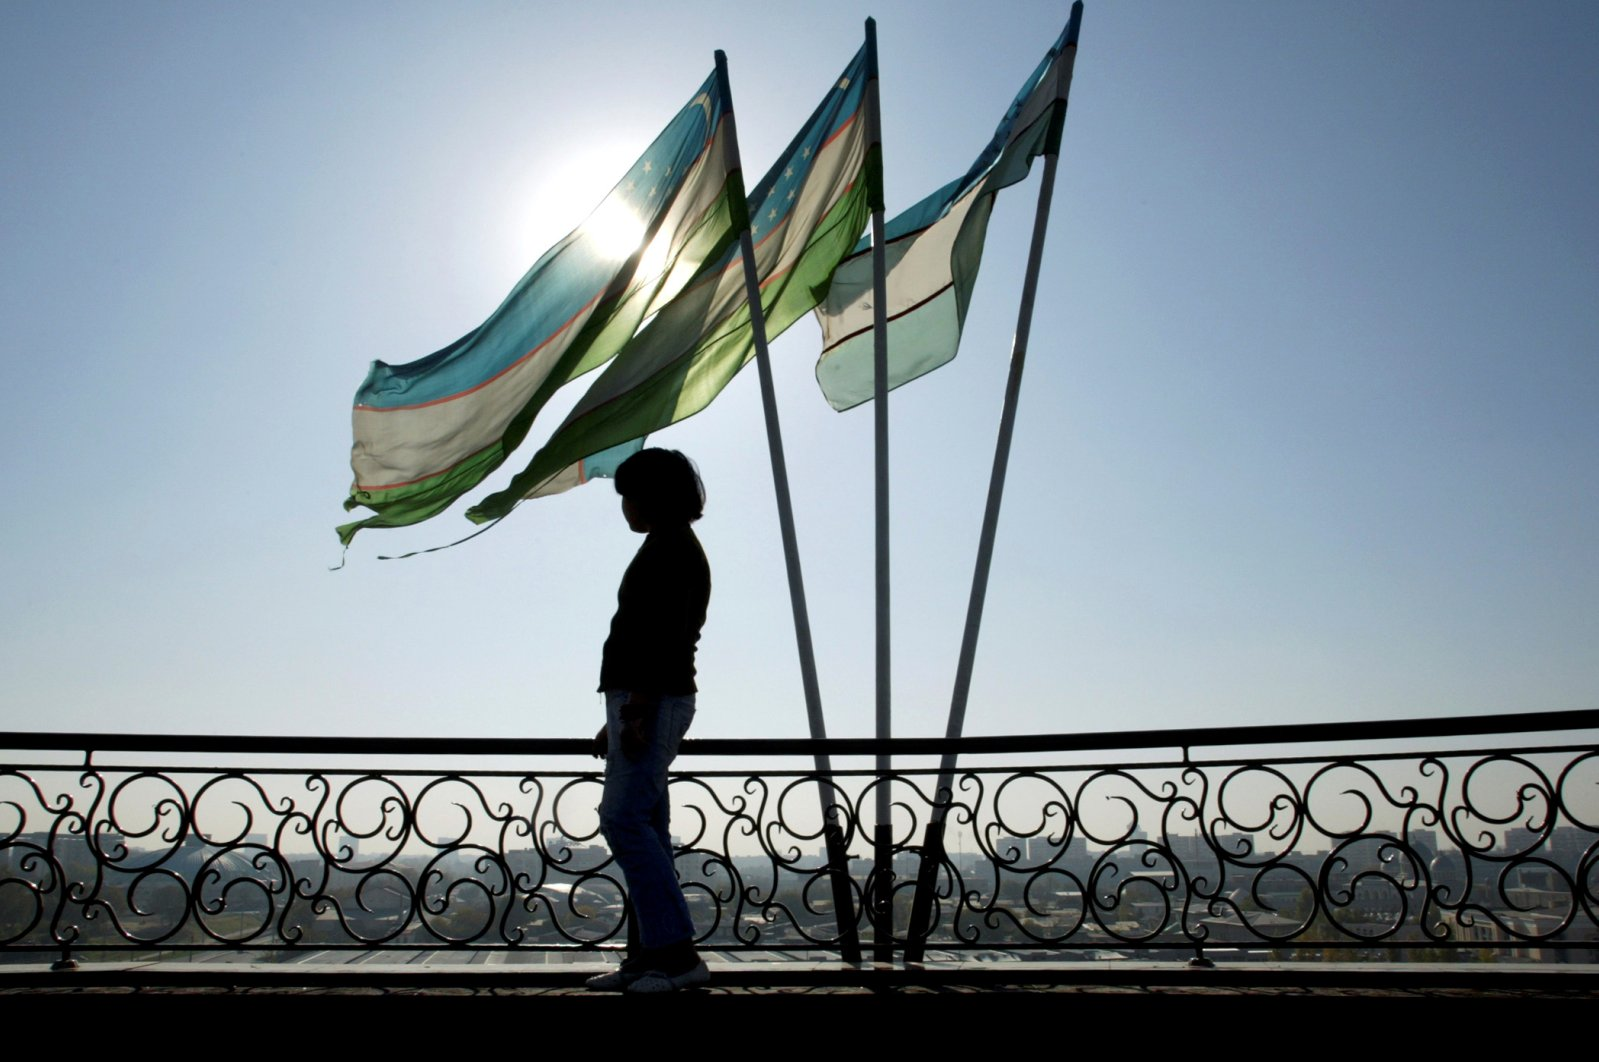 A girl is silhouetted against the sun standing next to Uzbek flags in Tashkent. (Reuters Photo)